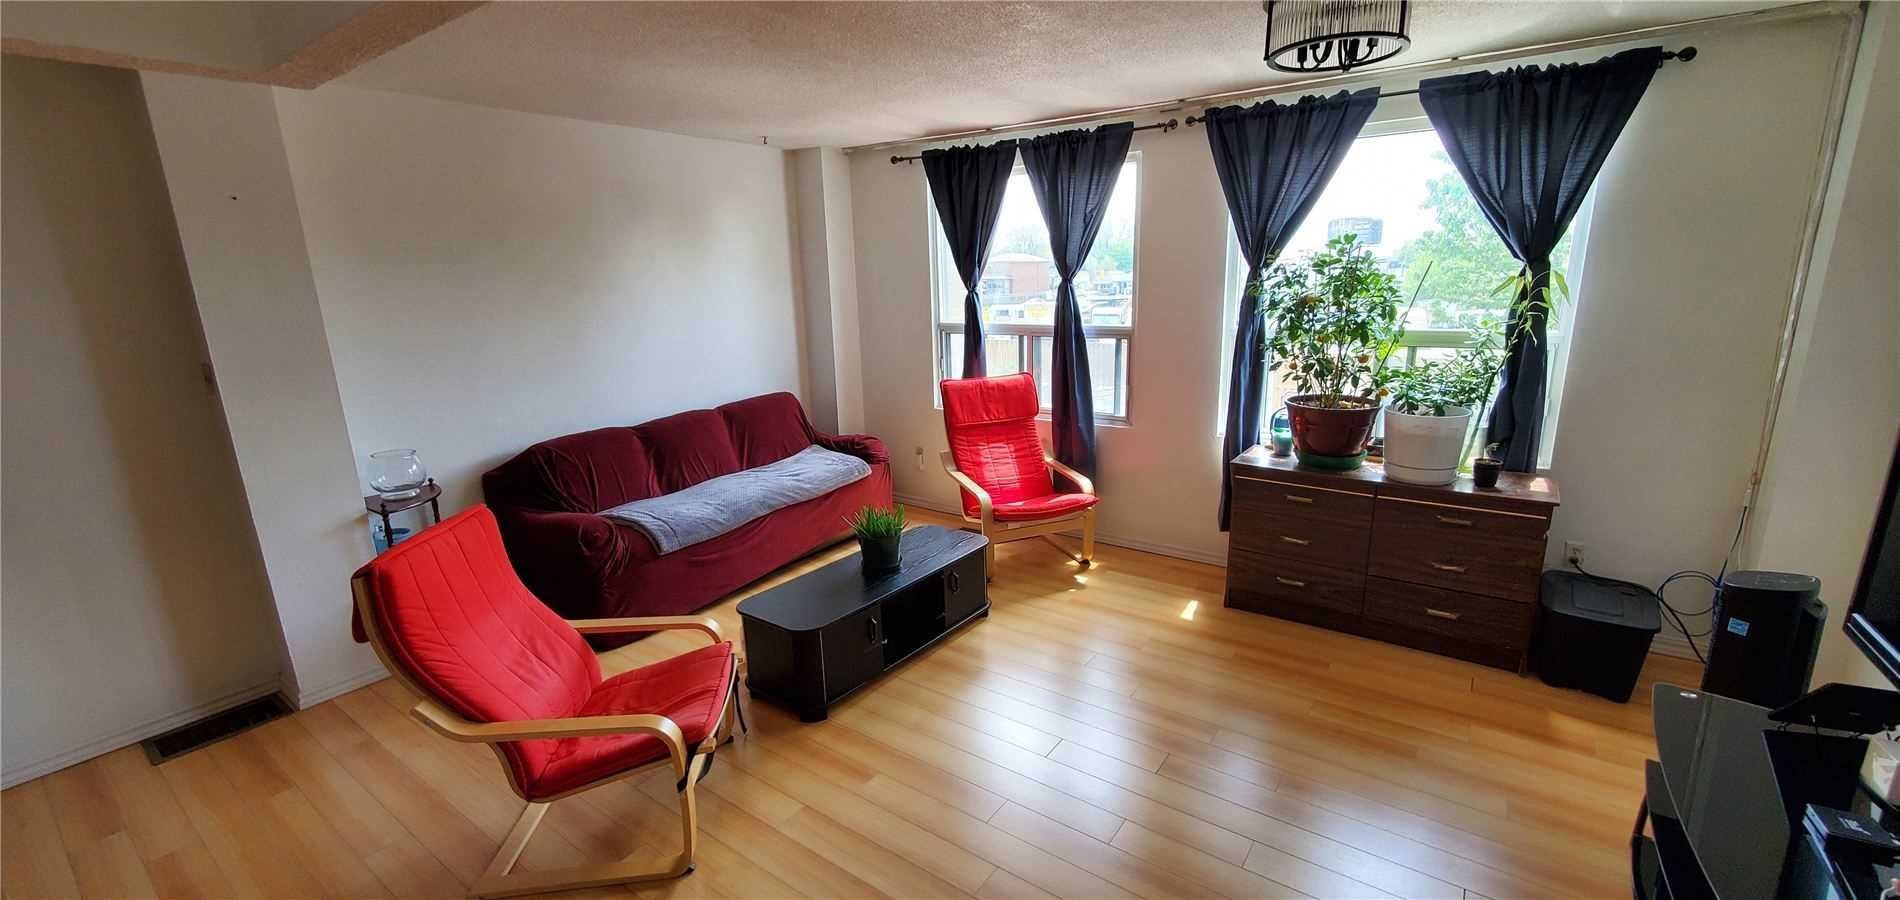 17 Lotherton Ptwy, unit null for sale in Toronto - image #1